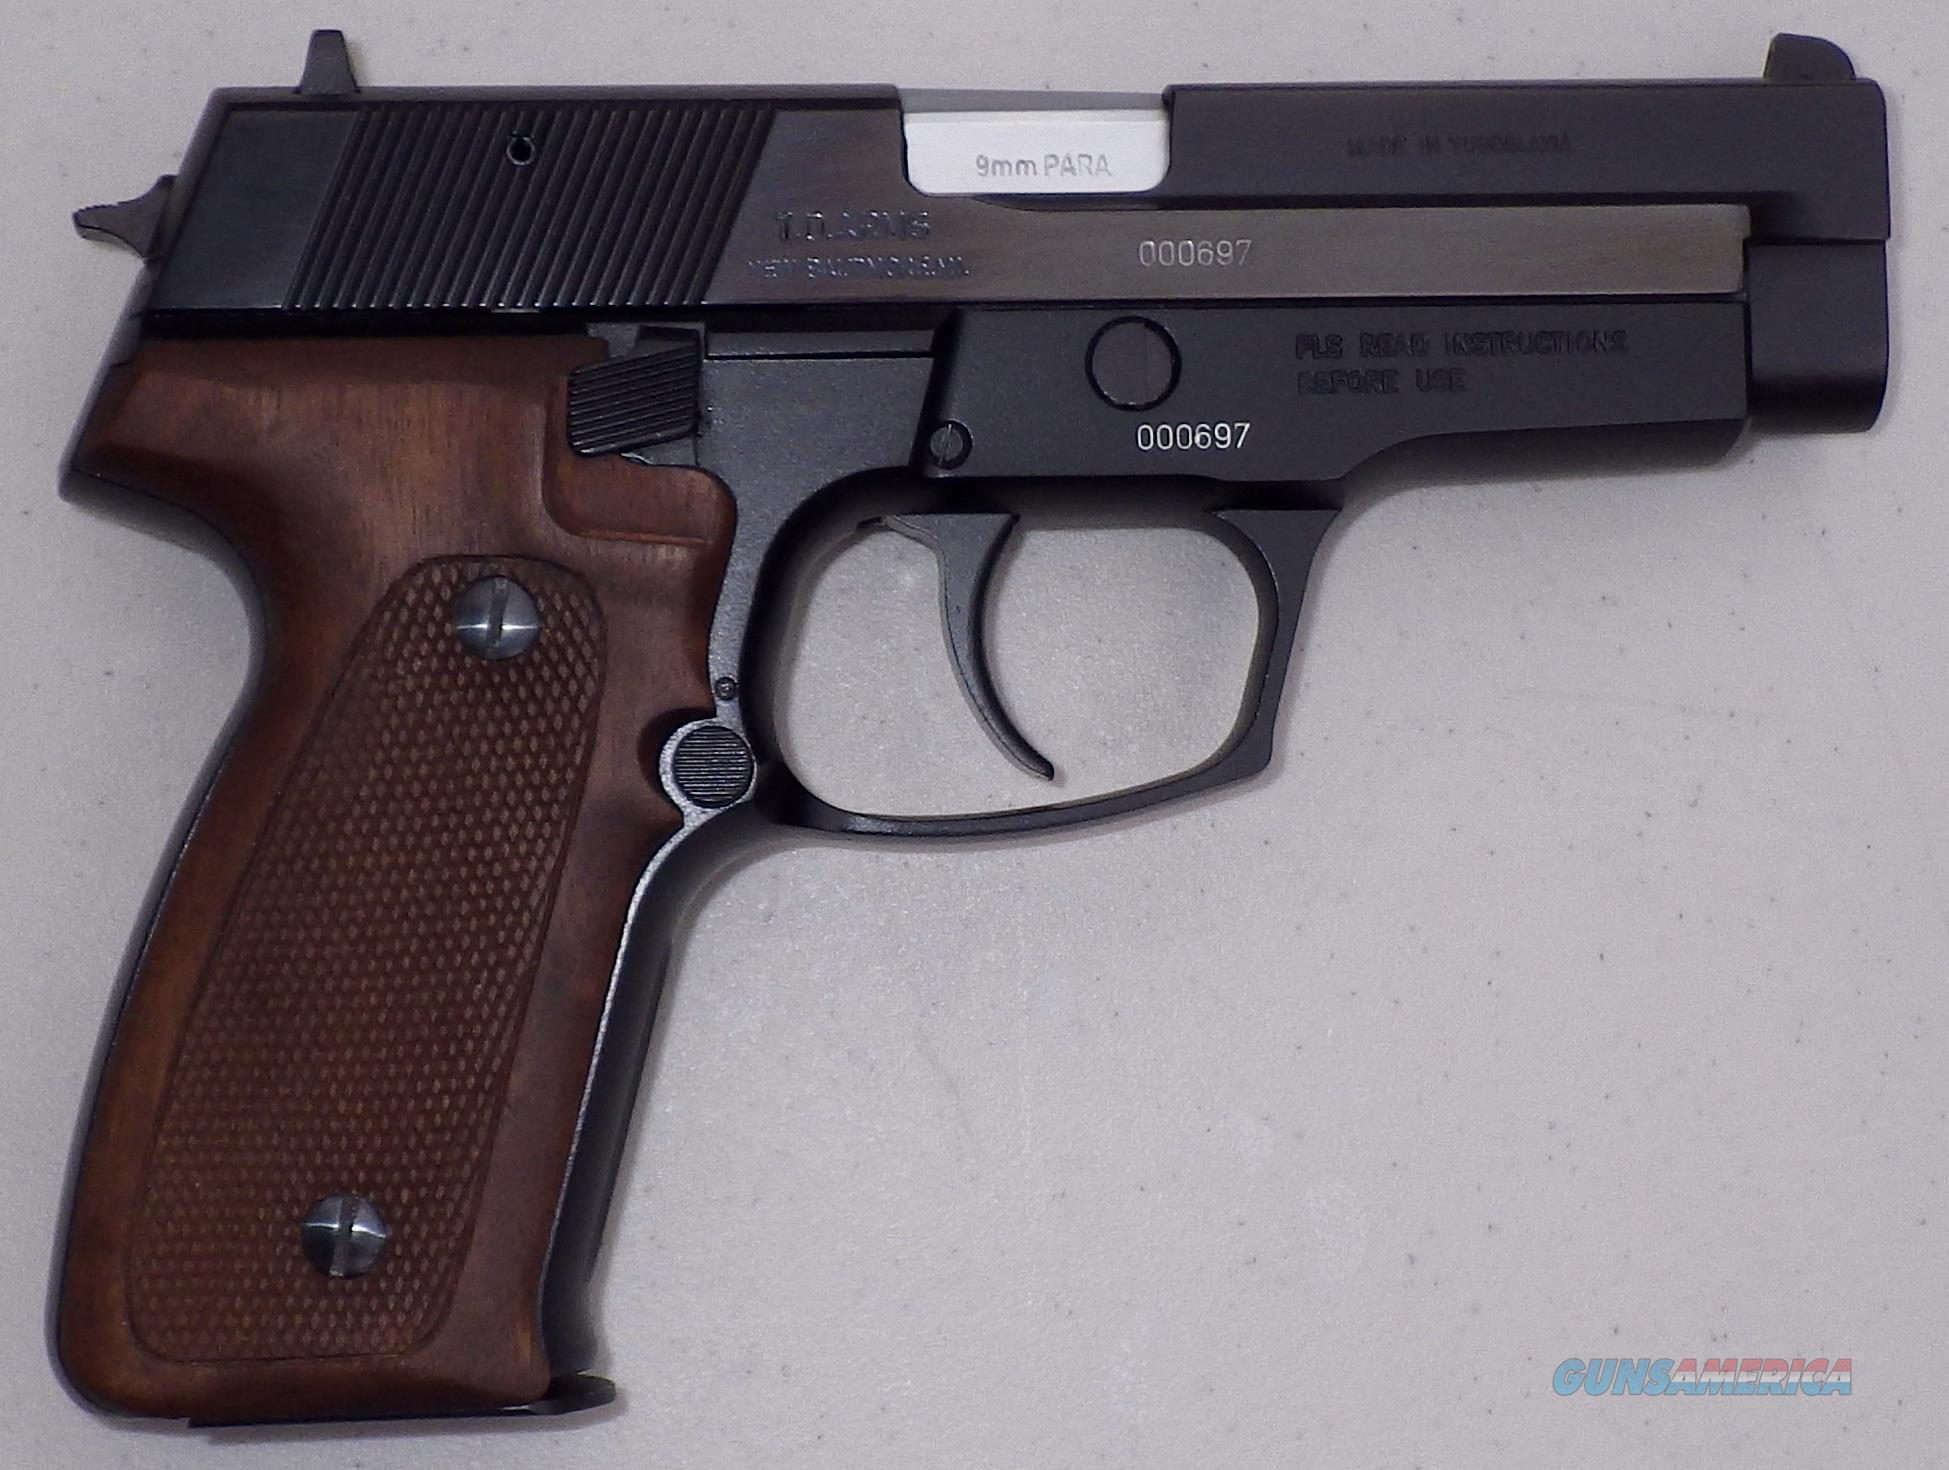 Zastava (CZ) 99 9mm circa 1991, new in box, 2 15-round mags, papers, wood grips, partially-polished slide  Guns > Pistols > Zastava Arms